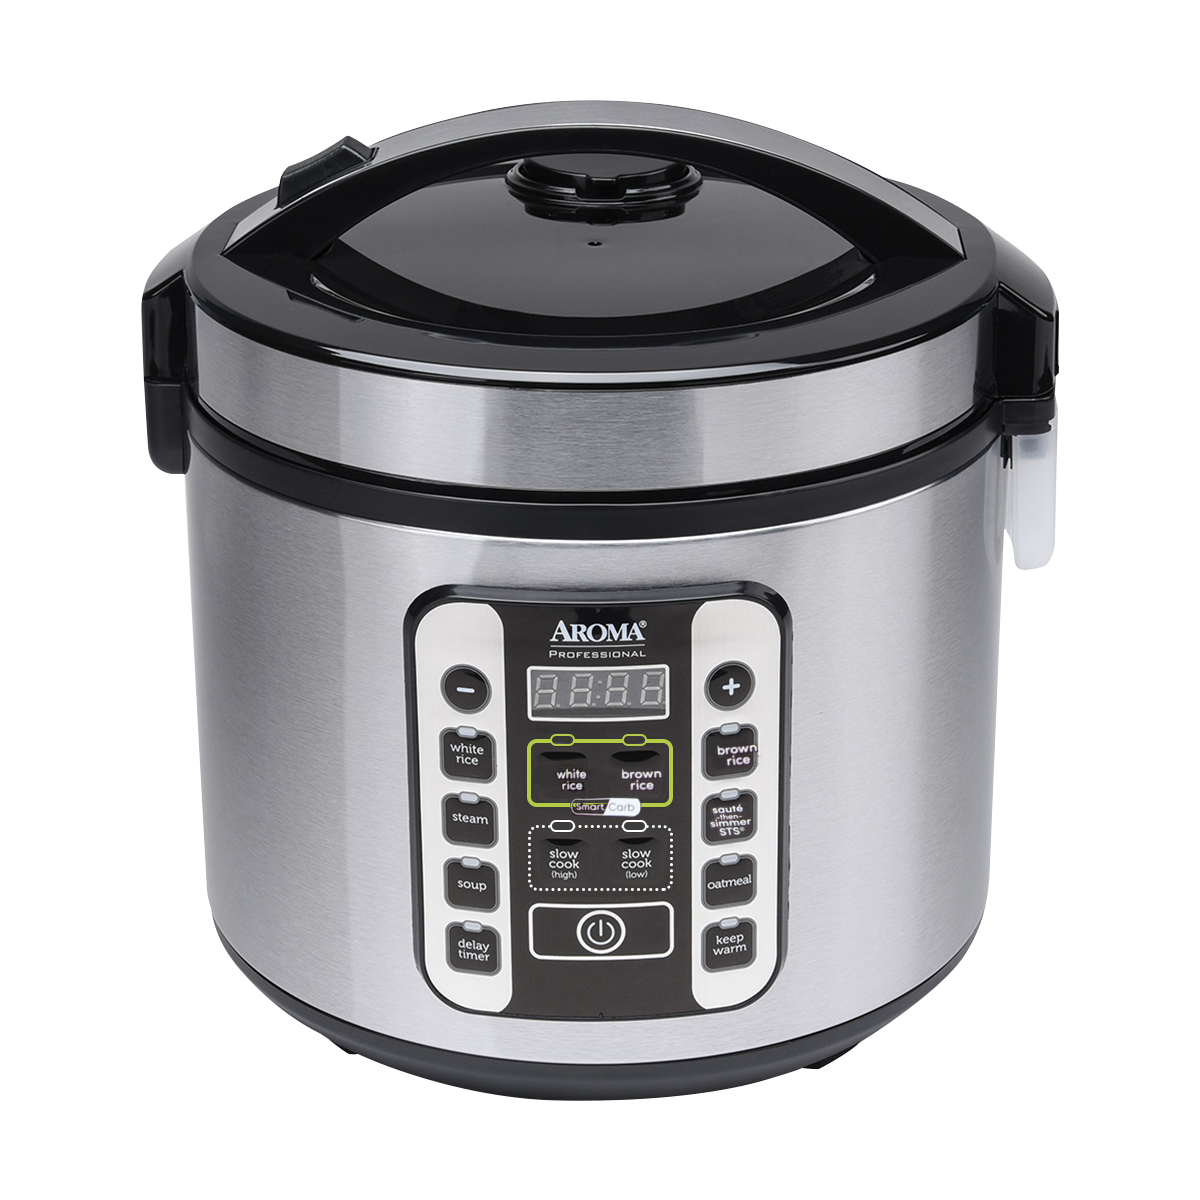 Yamibuy.com:Customer reviews:【Pre-order-Ship in 1 day】【New】Aroma Smart Carb Food Steamer Multigrain Slow Cooker 10 Cup Carbohydrate Reduced Rice